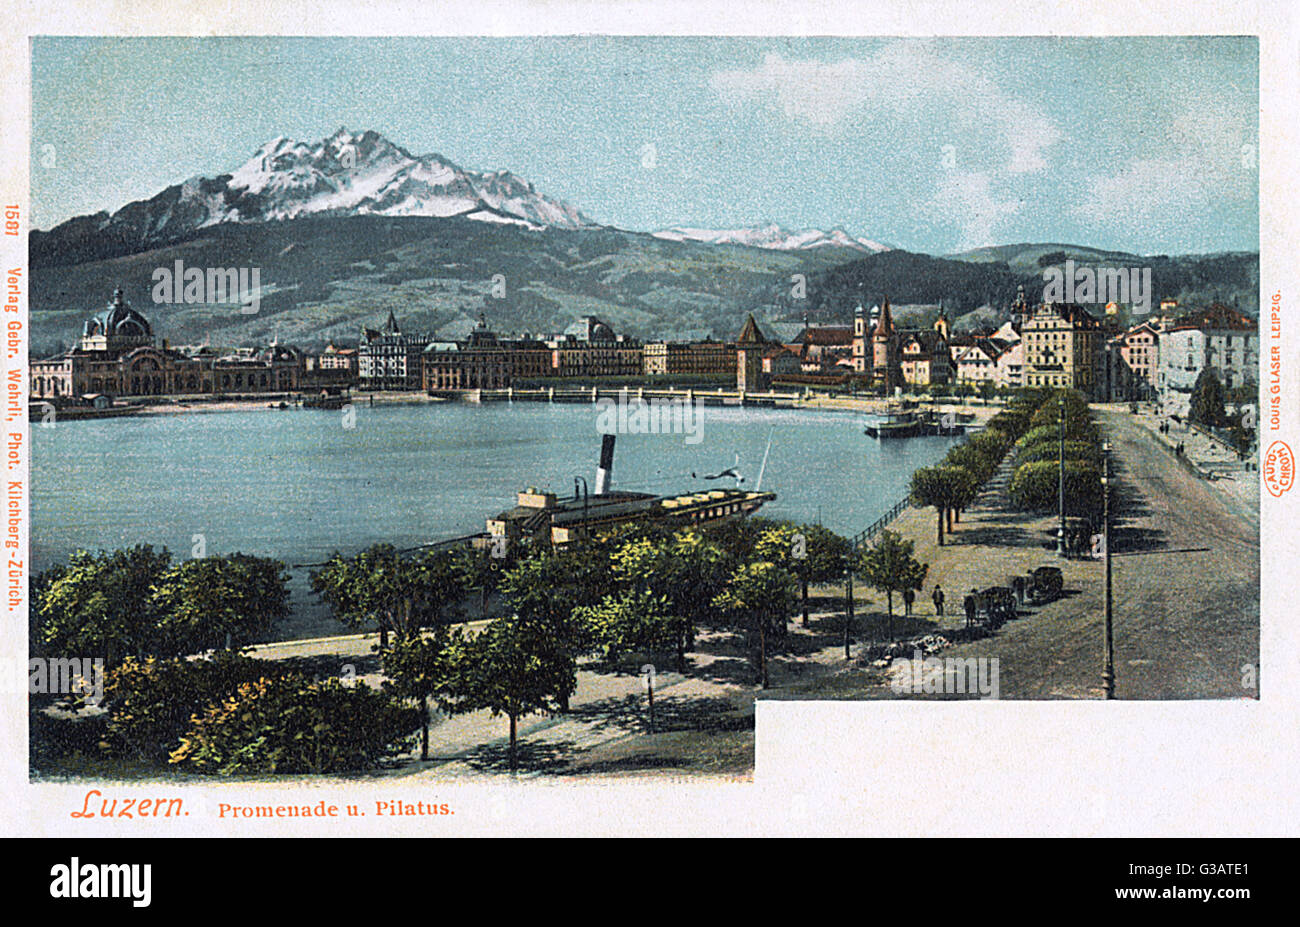 Promenade, with a distant view of the Pilatus Mountain, Lucerne, Switzerland. - Stock Image